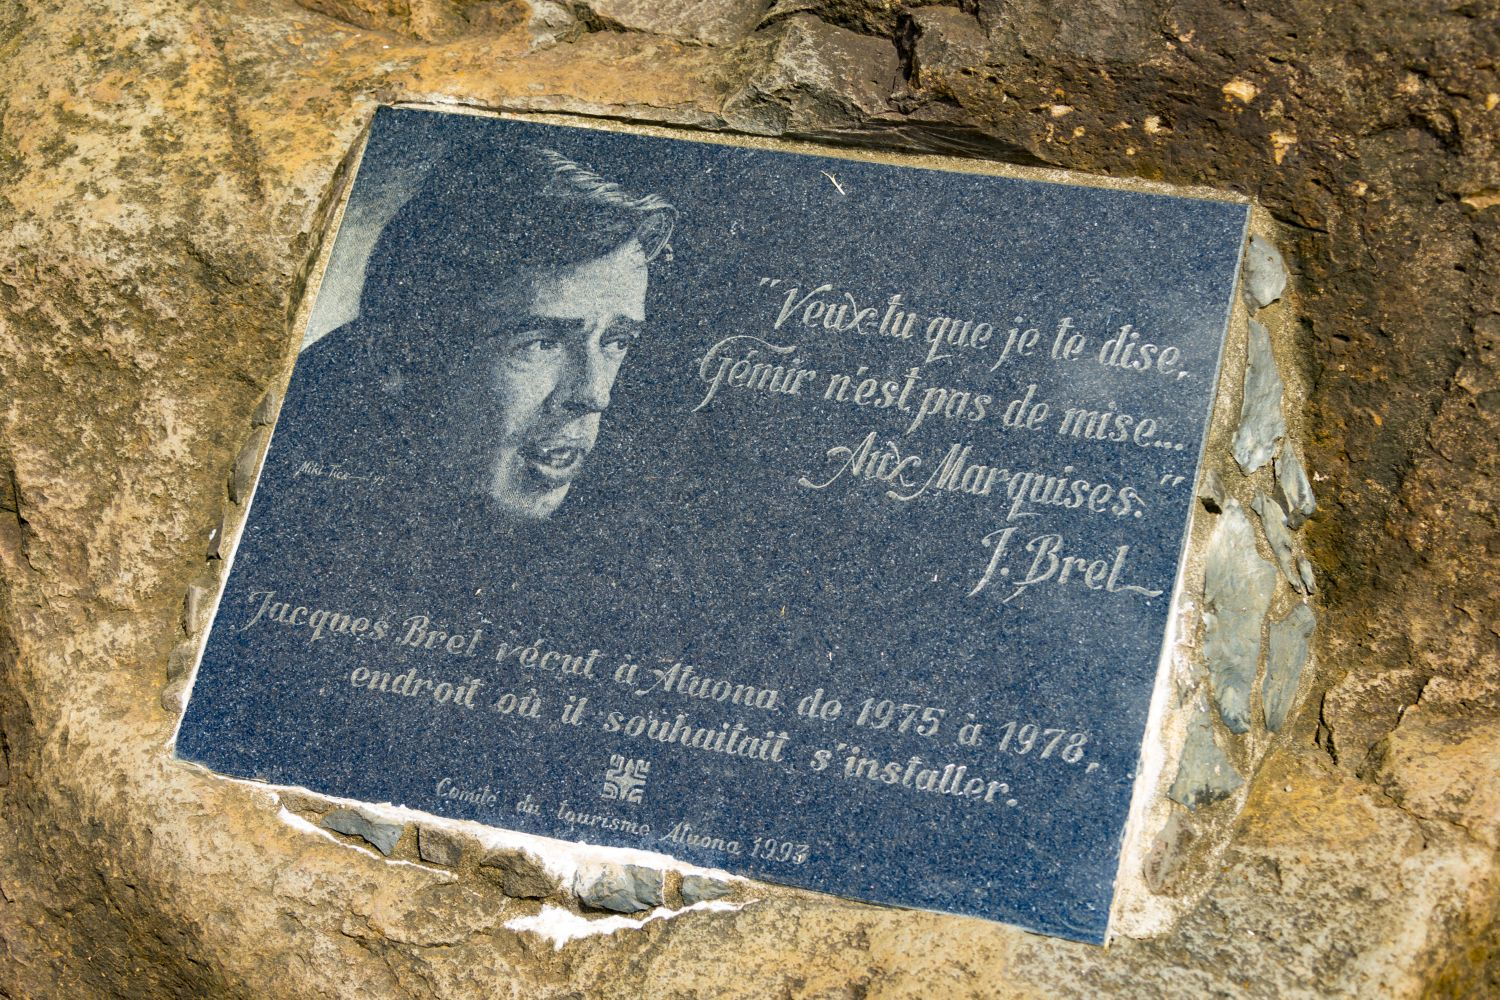 plaque citation jacques brel iles marquises